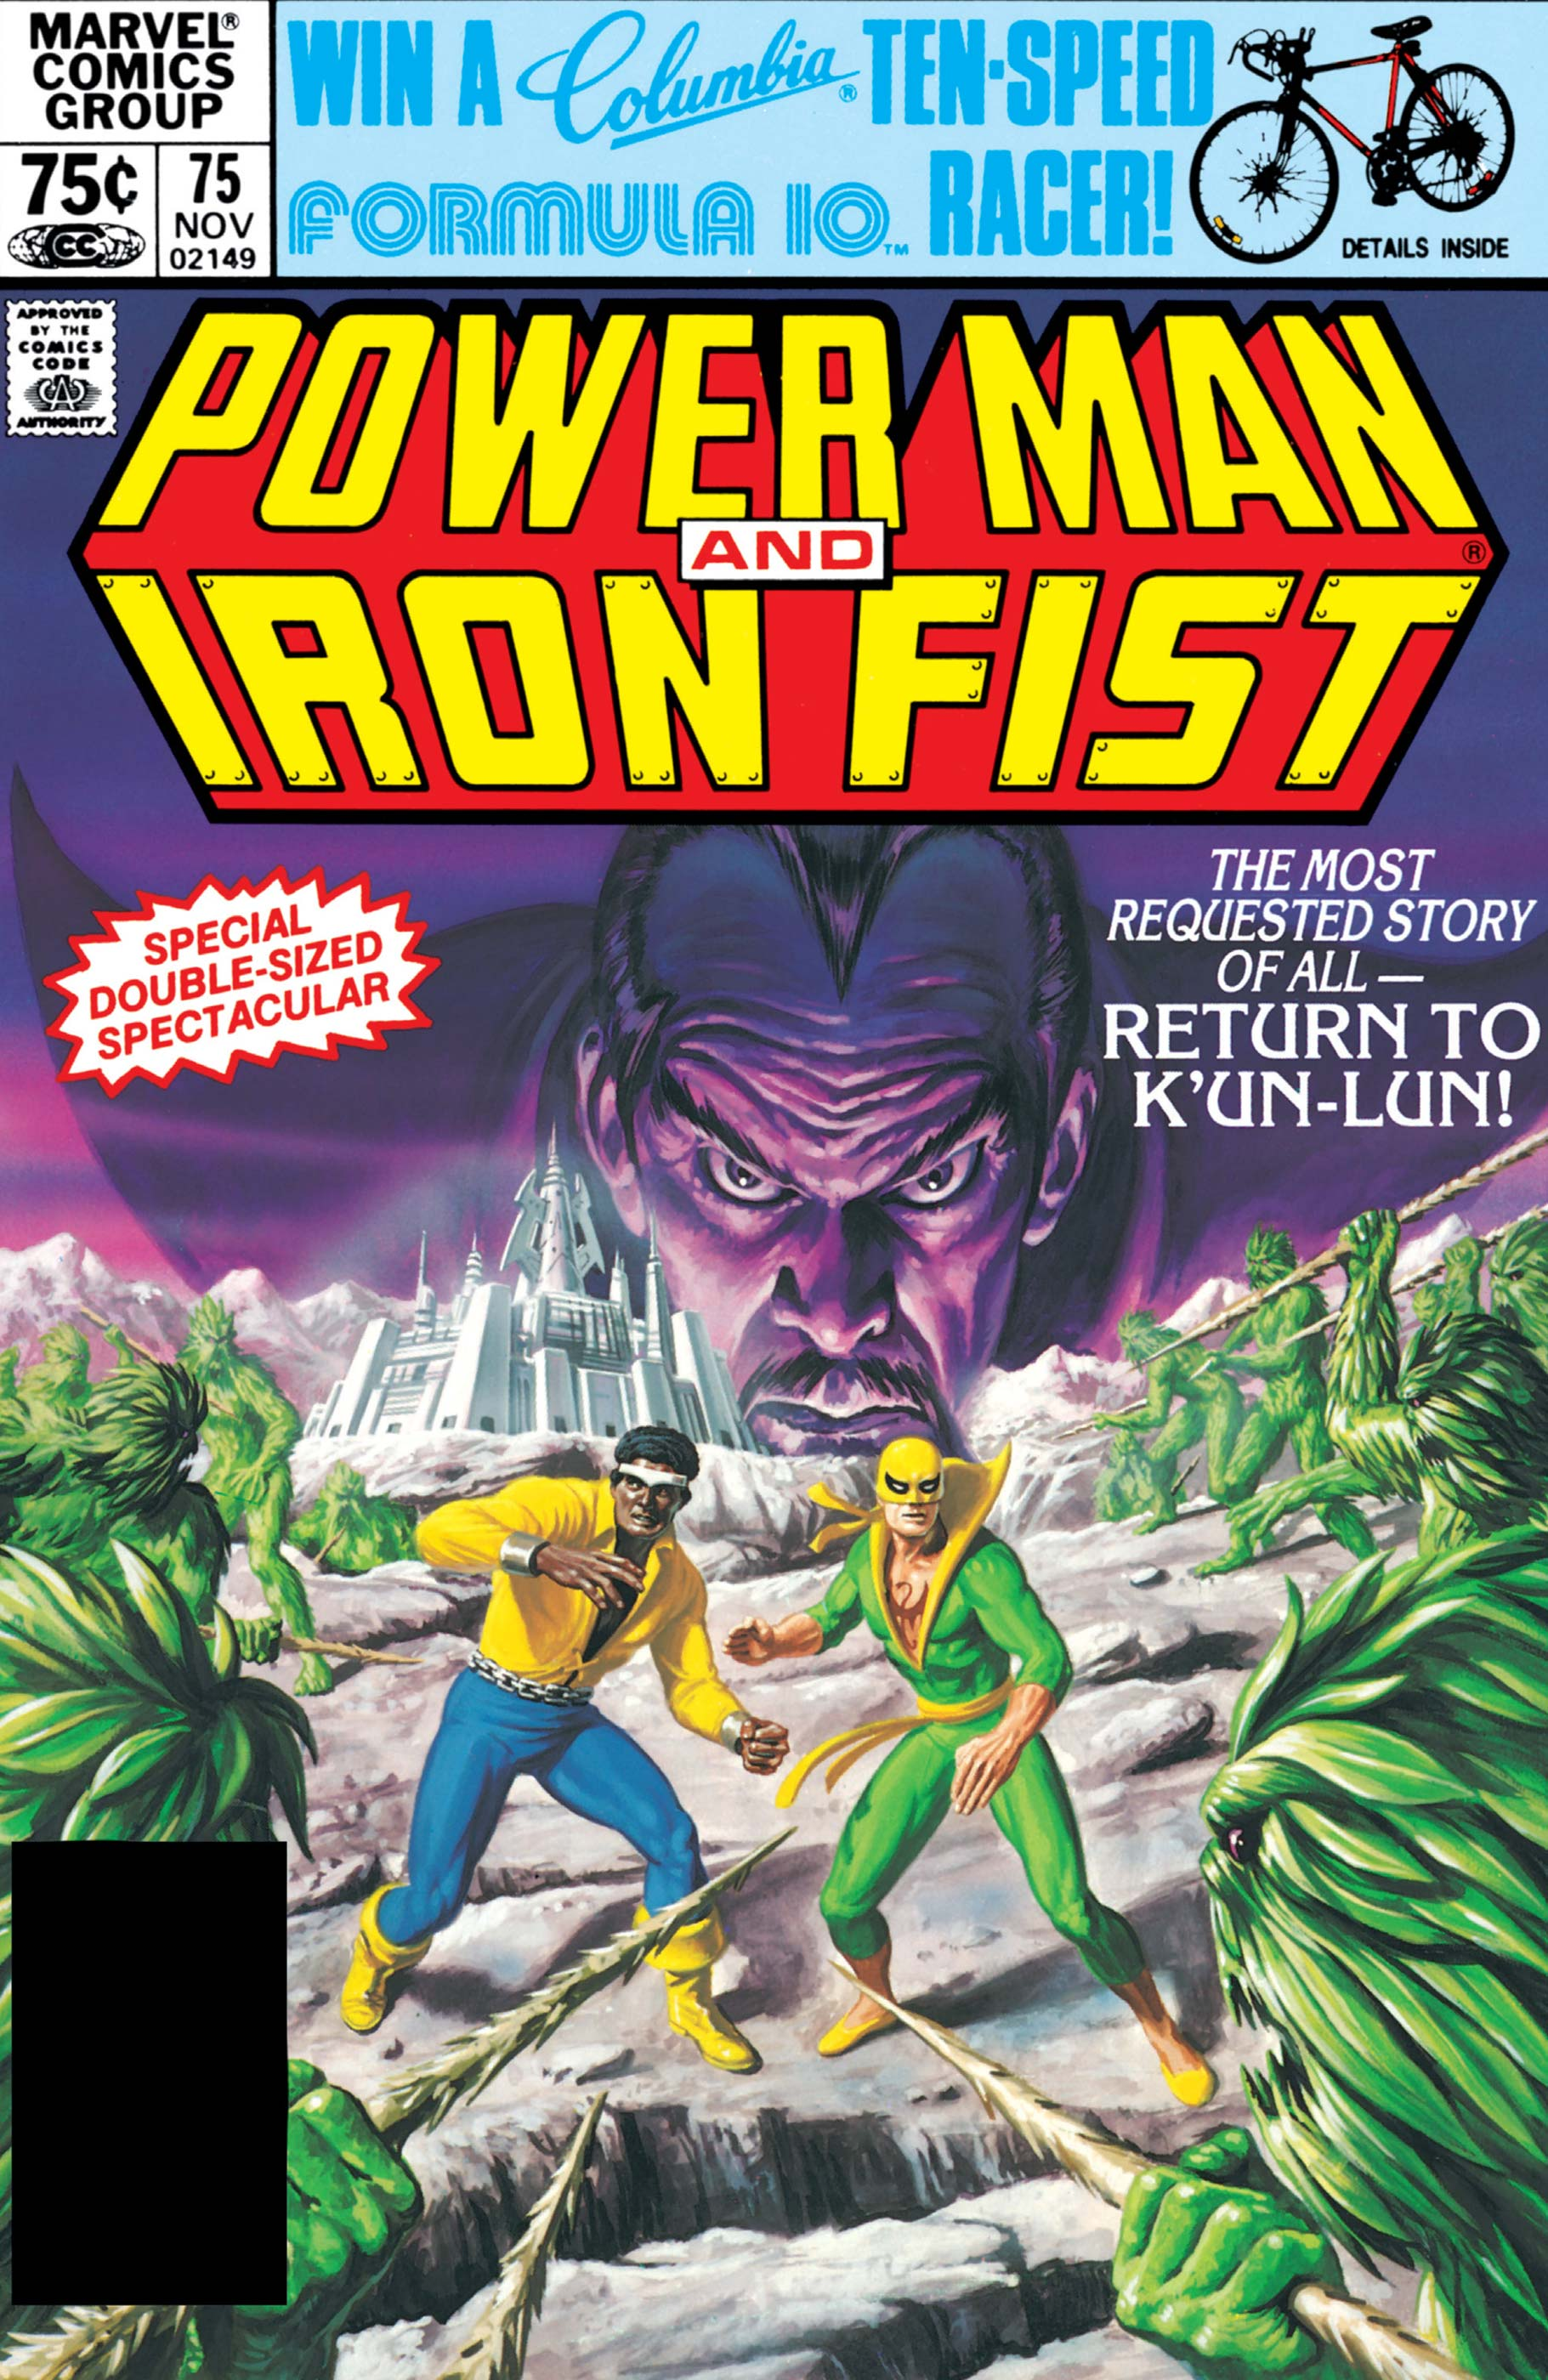 Power Man and Iron Fist (1978) #75